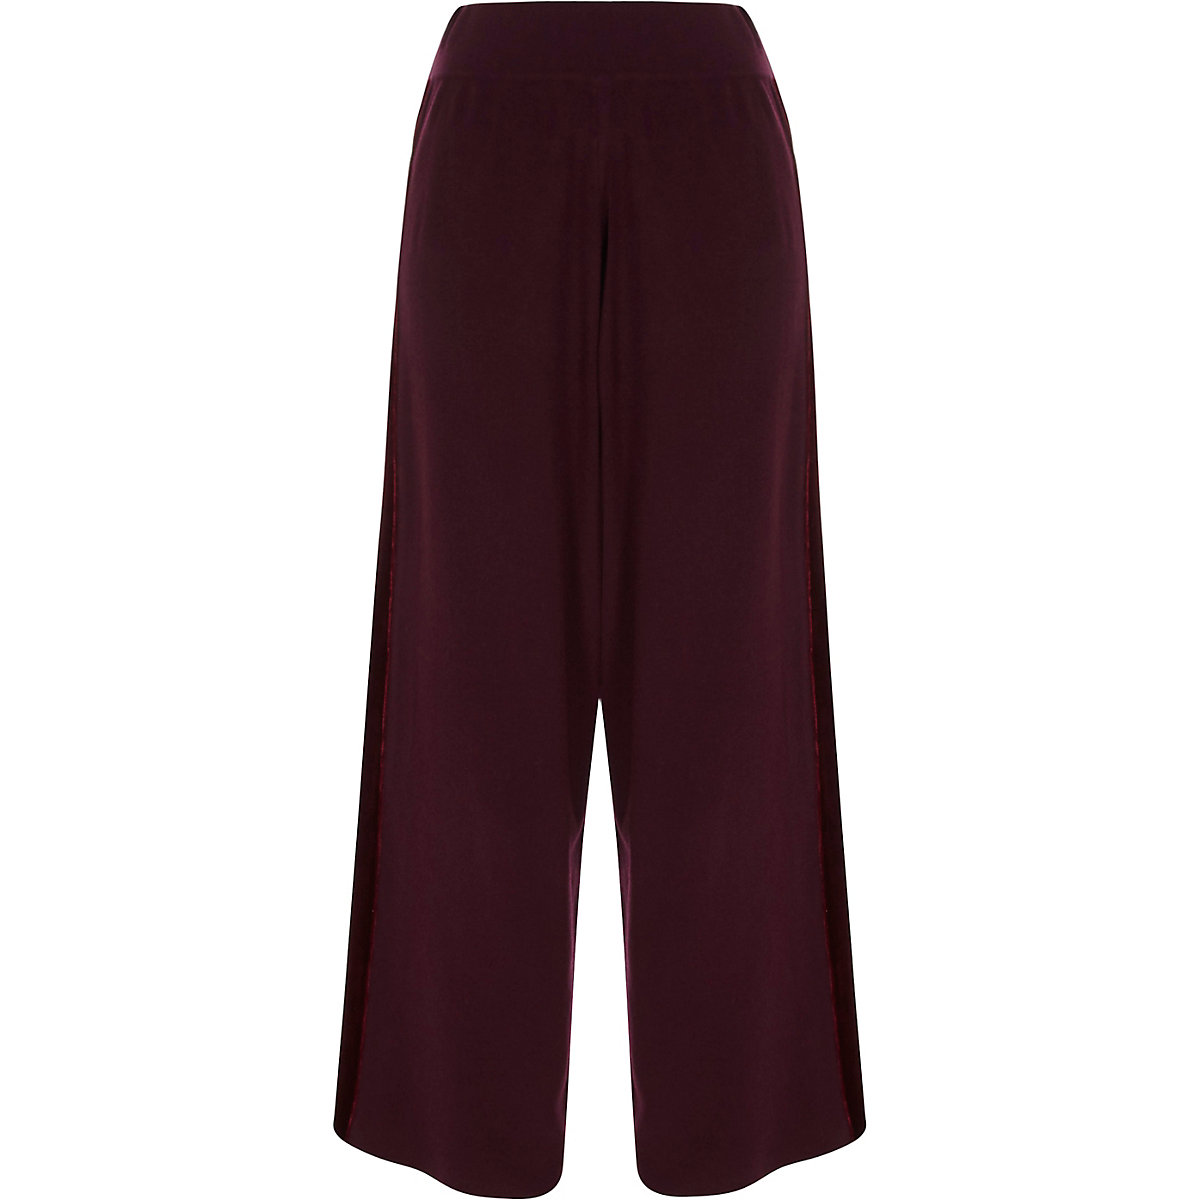 Pantalon large bordeaux avec empiècements en velours